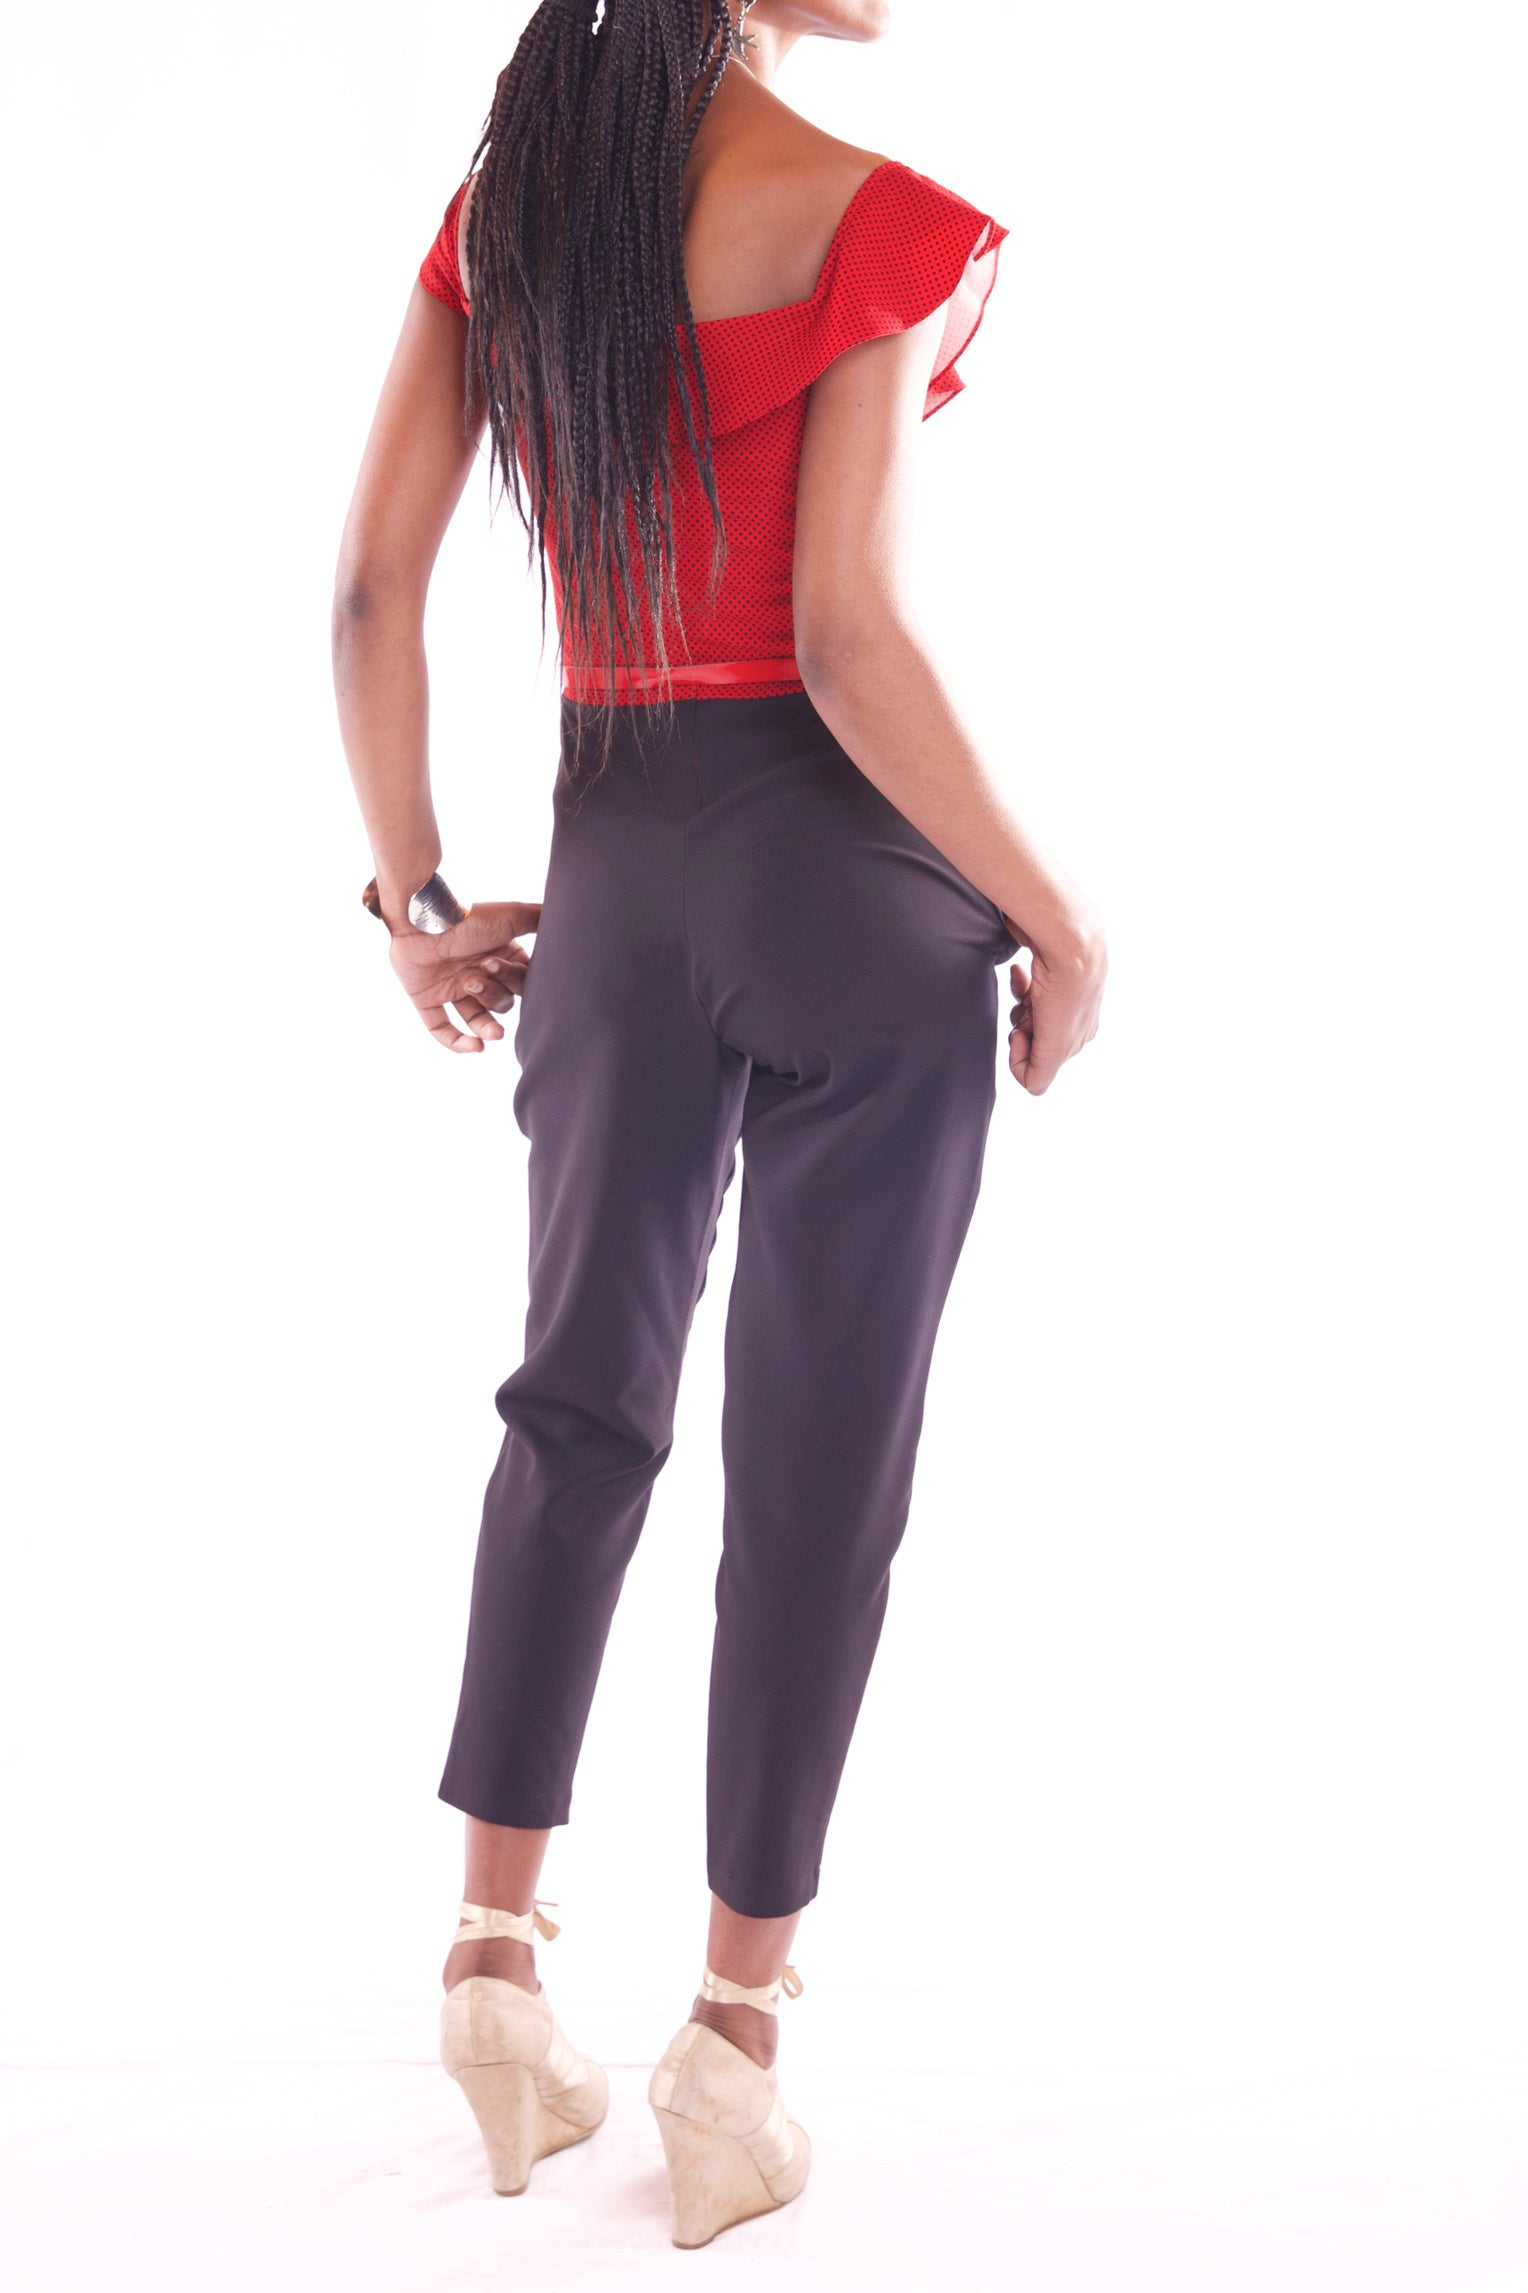 Women Sleeveless Midi Red With Black Jumpsuit - Hillmarten